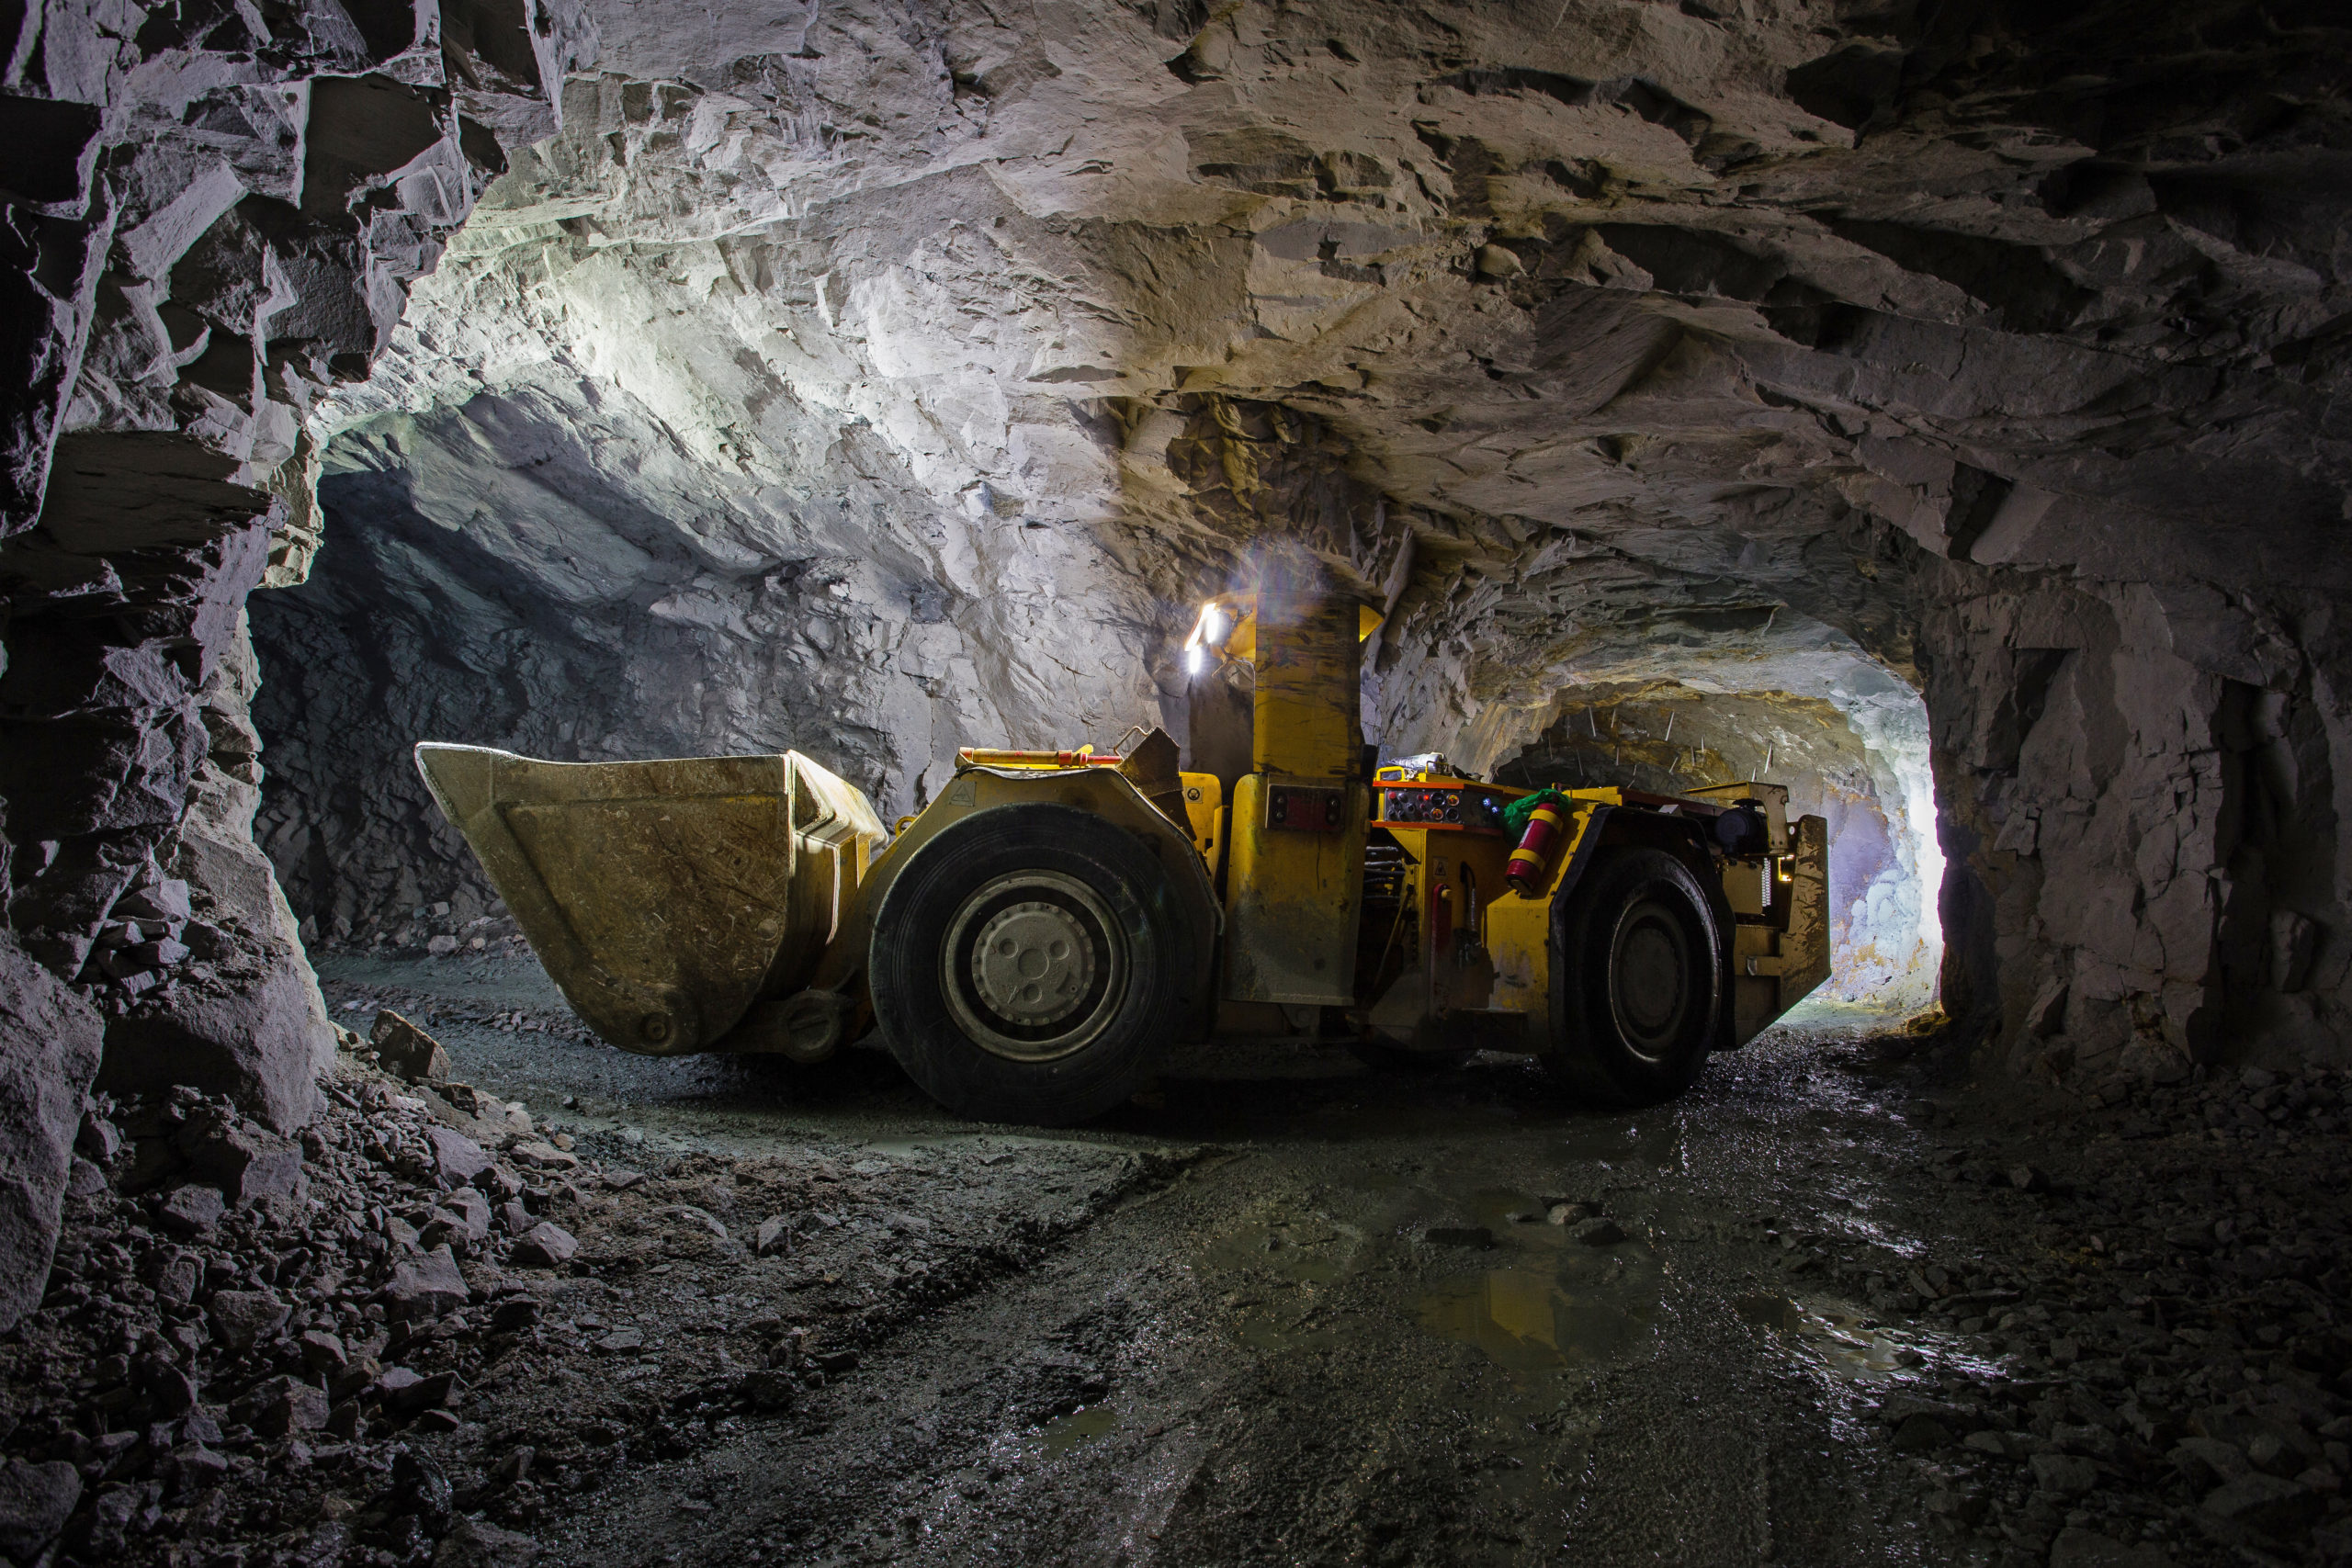 Underground gold ore mine shaft tunnel gallery passage with load